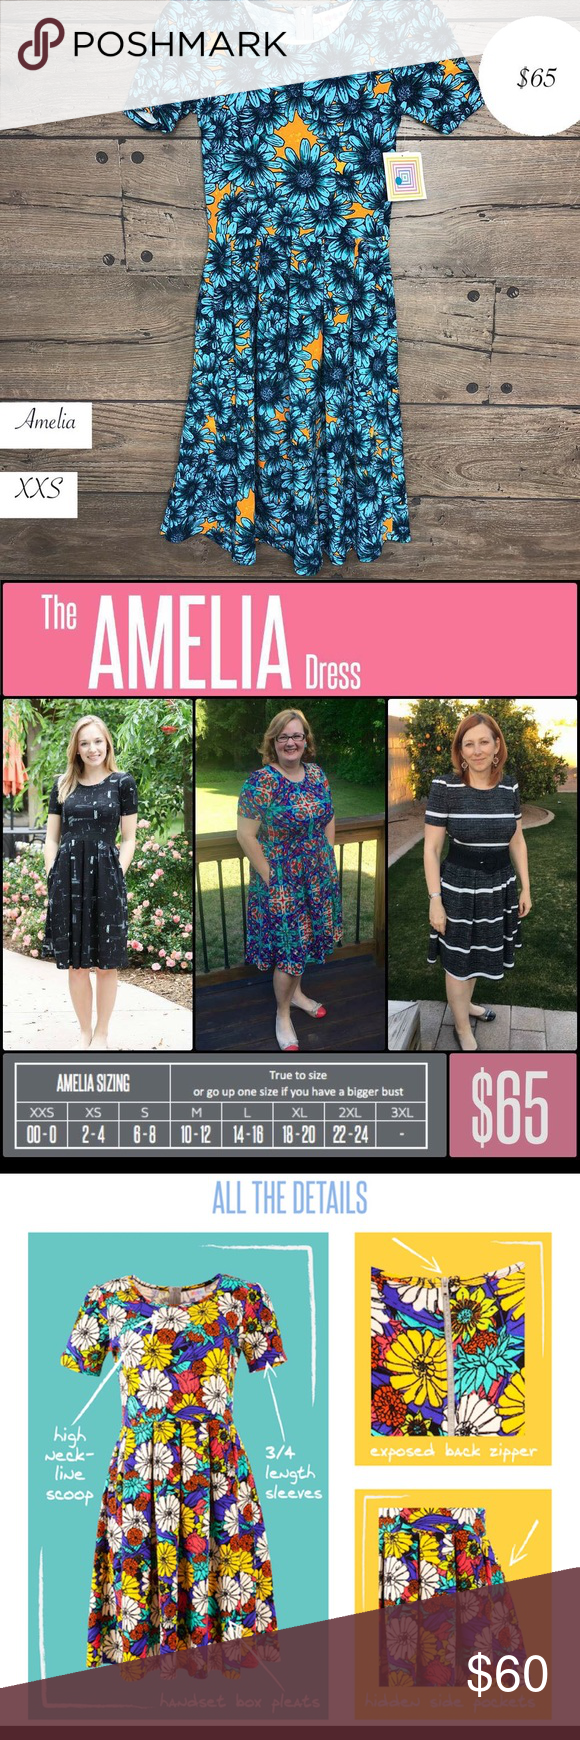 237dc6c5612bd LuLaRoe Amelia dress sunflowers New With Tags The Amelia Dress stretchy  knit fabric is comfortable enough to let you wear the dress all day, while  having ...